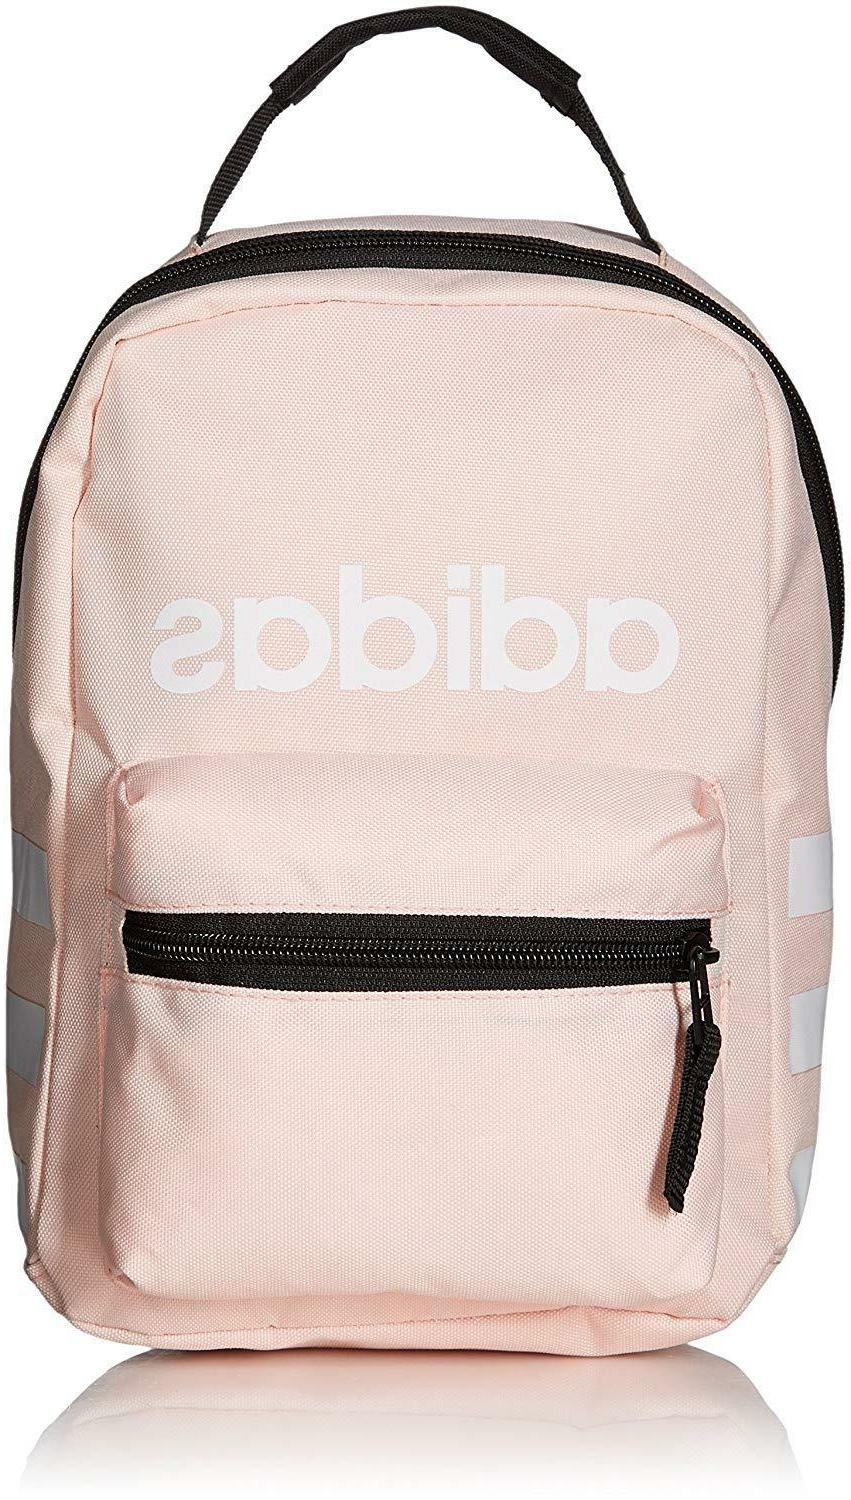 ADIDAS Santiago Lunch Bag NEW Pink or Blue